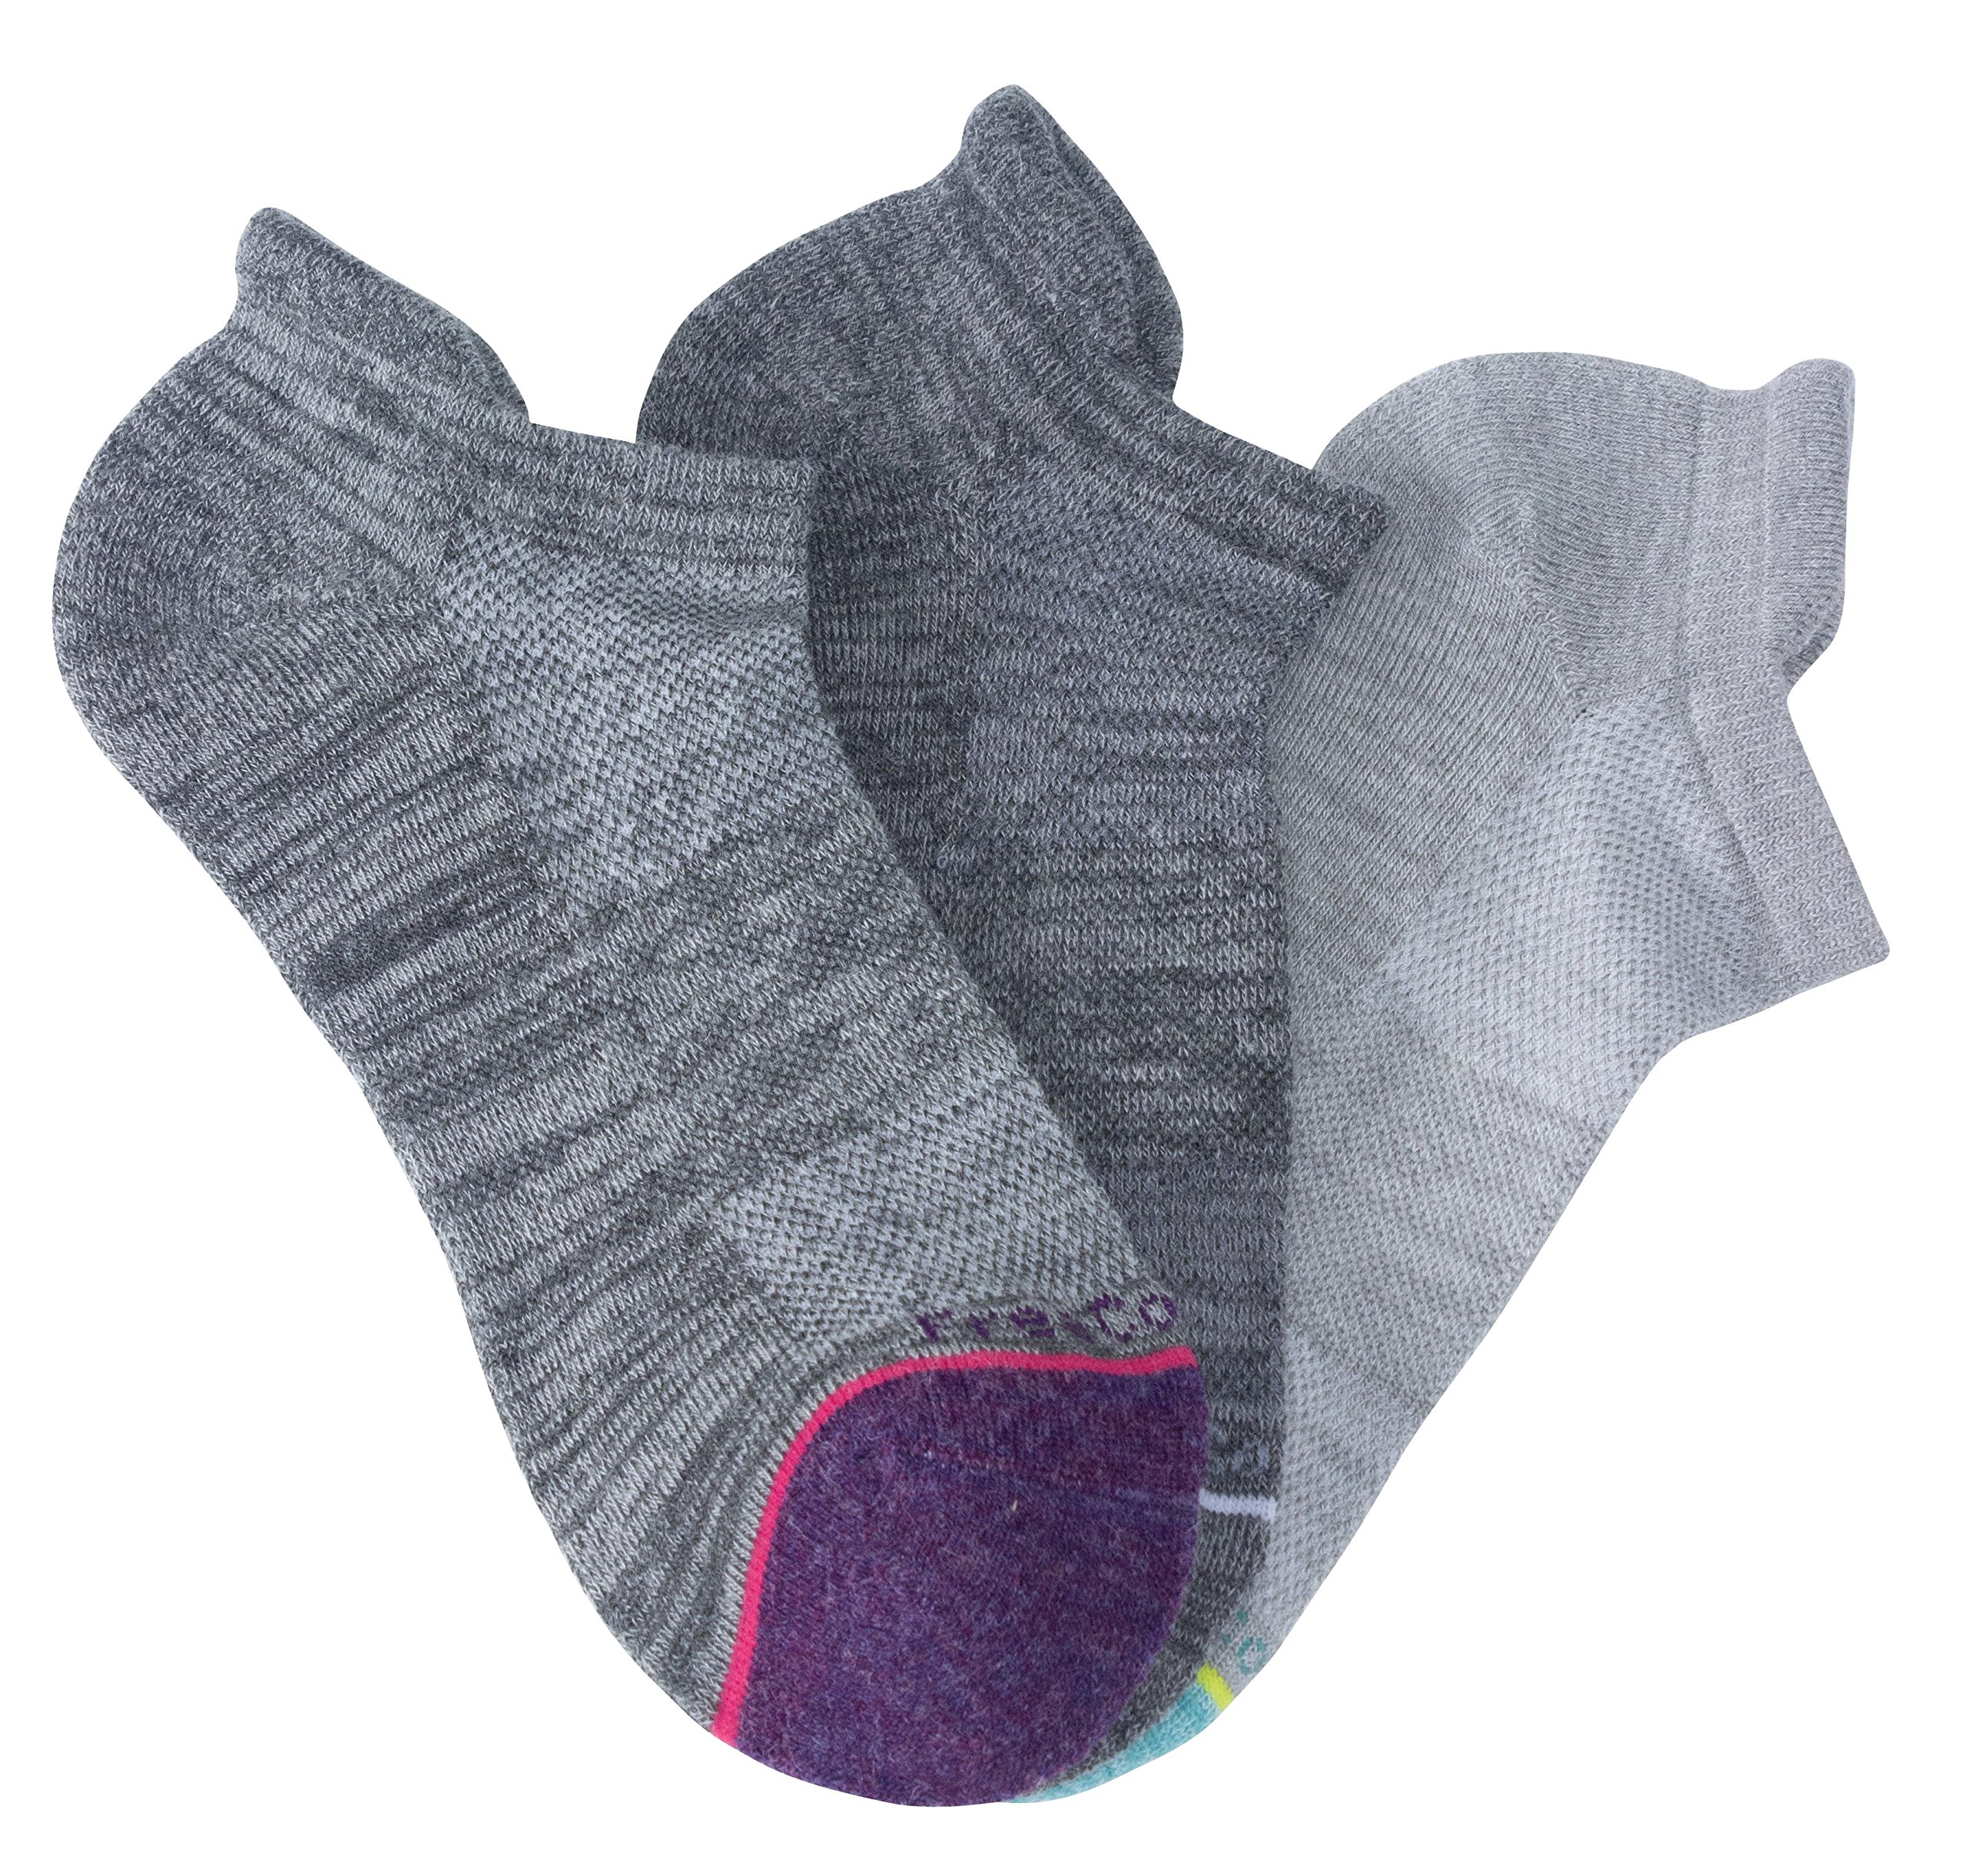 Free Country 3 Pack No Show Socks, Wool Basics, 9-11 (Fits Women's Shoe Sizes 6-10)